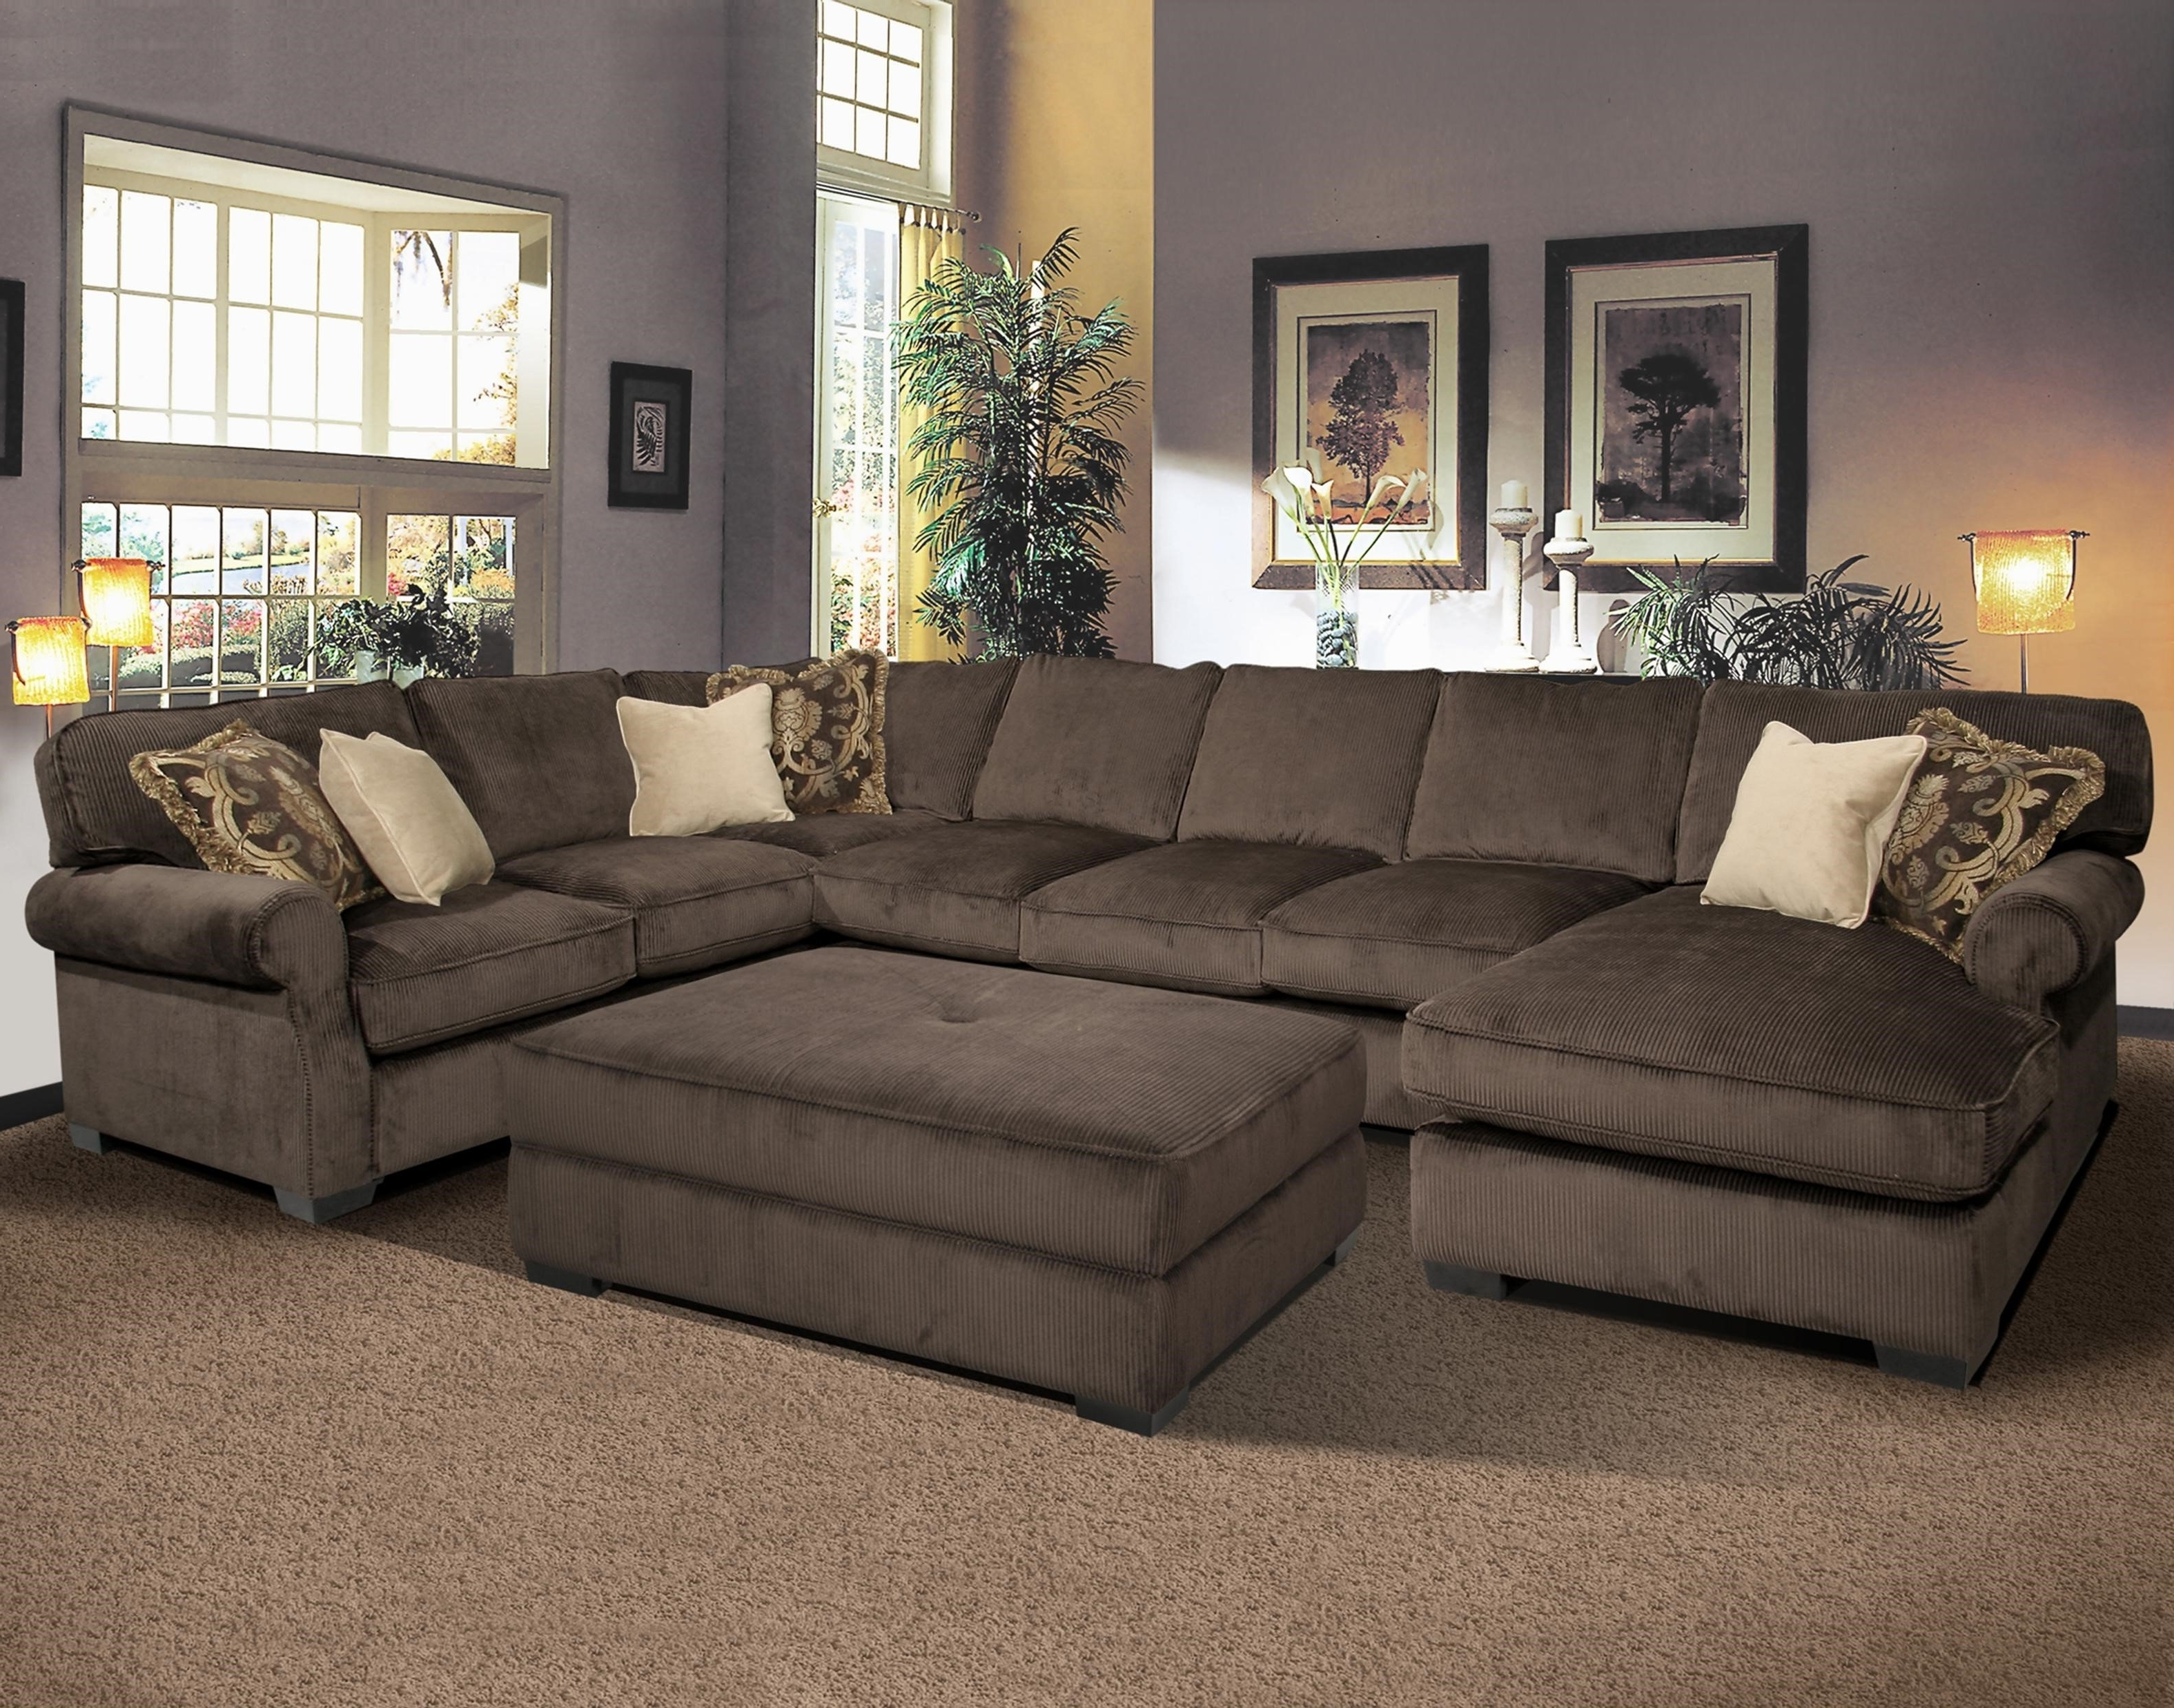 2017 Long Sectional Sofas With Chaise Throughout Sectional Sofas Cheap Sectional Sofa With Chaise Chaise Sectional (View 10 of 15)